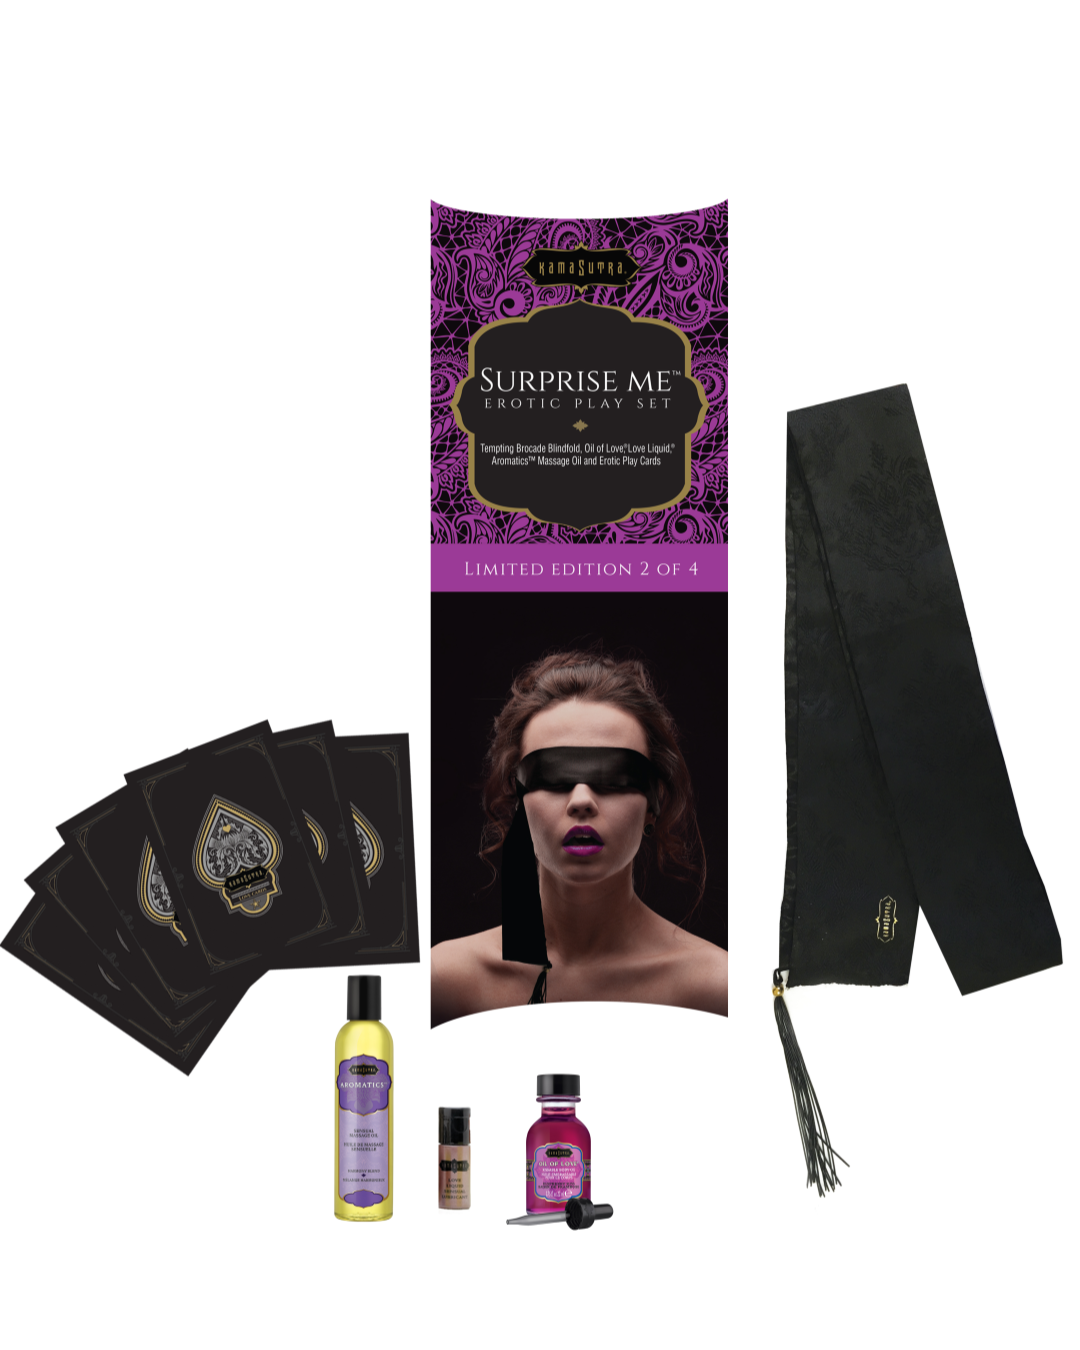 Kama Sutra Surprise Me Erotic Play Set